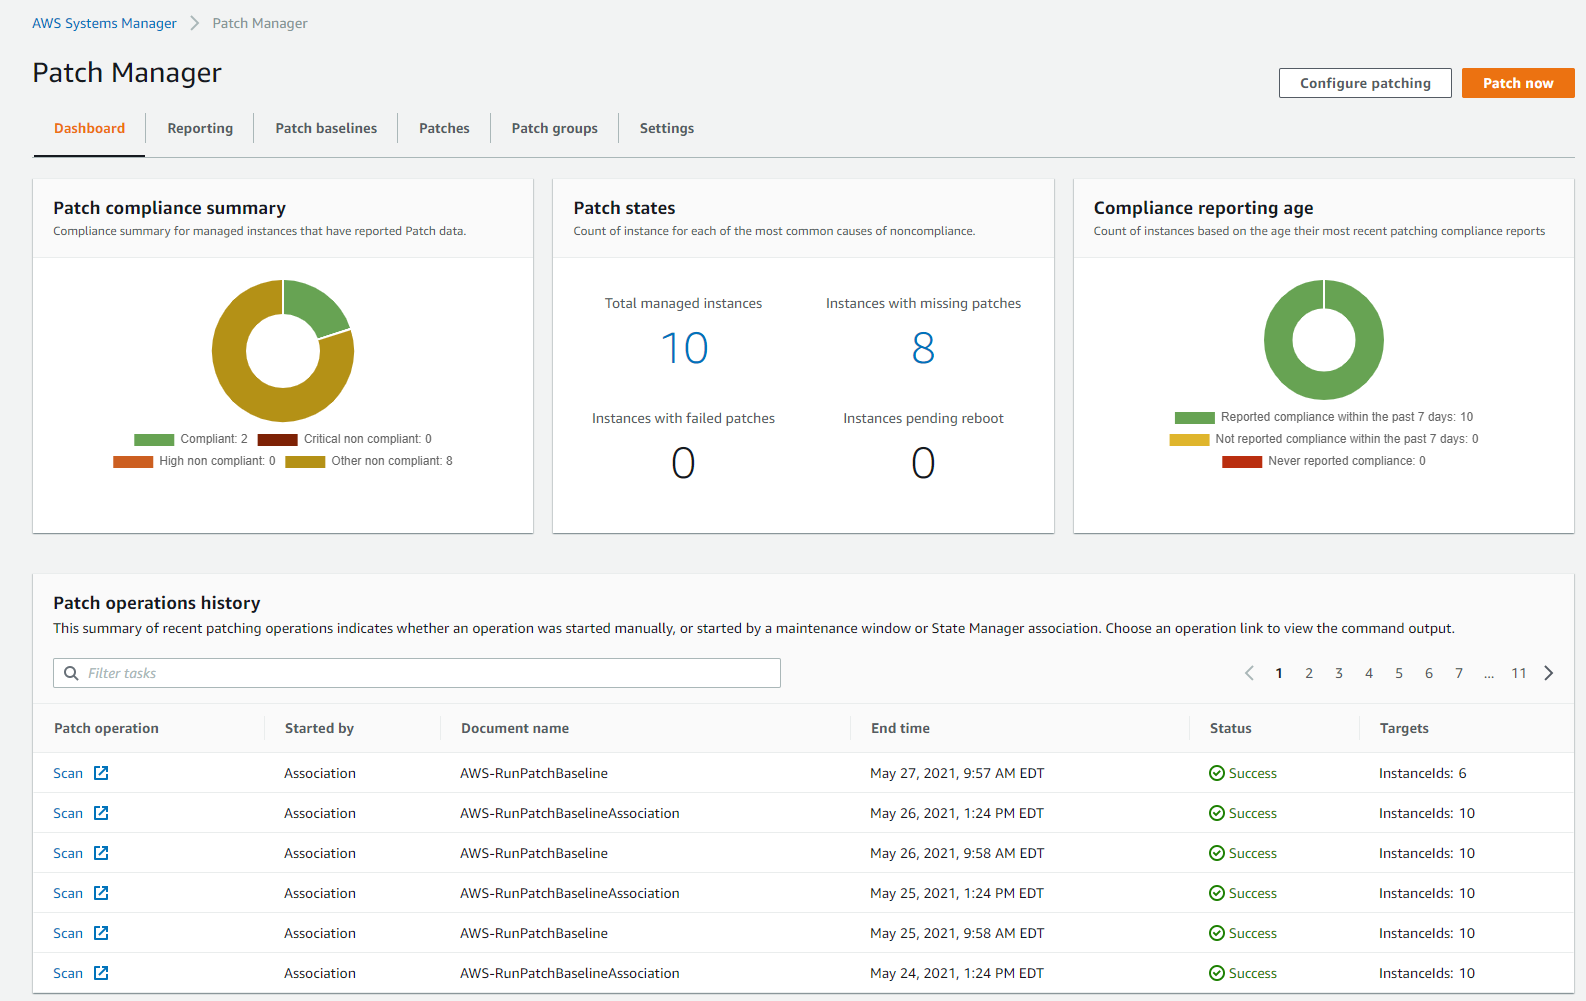 Figure 4. Patch Manager dashboard